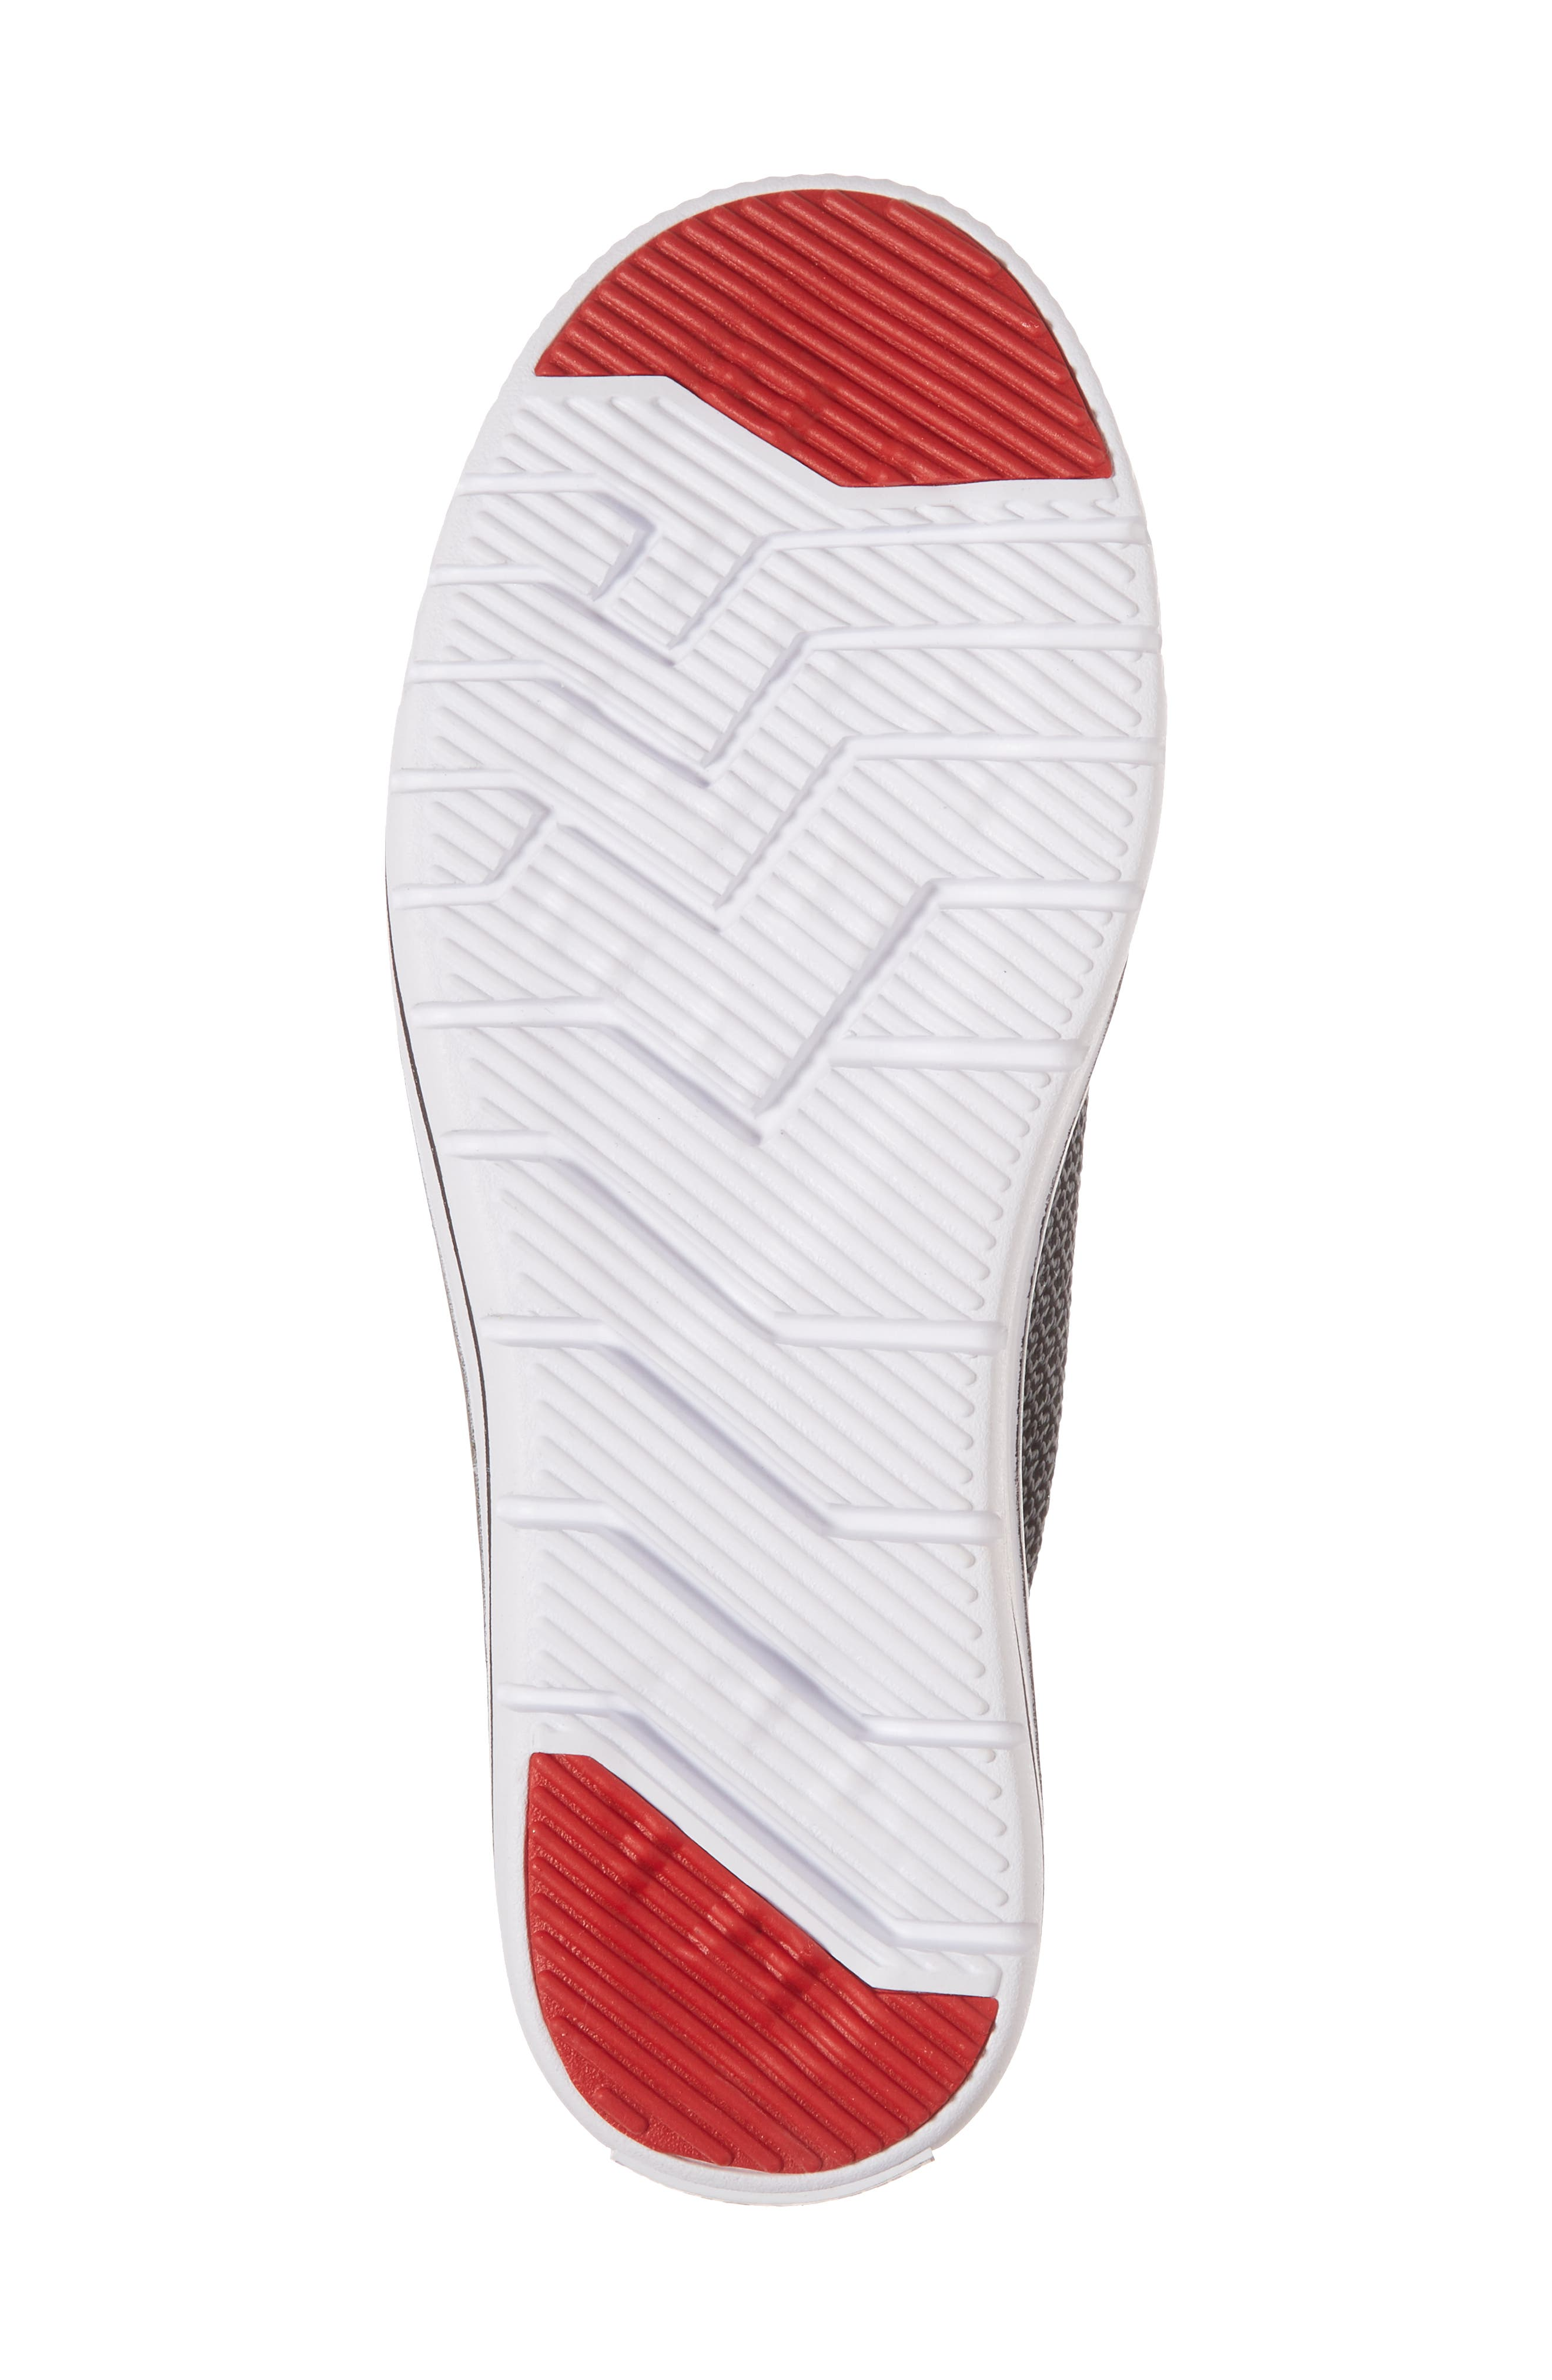 Chuck Taylor<sup>®</sup> All Star<sup>®</sup> Hyper Lite Ox Slip-On Sneaker,                             Alternate thumbnail 6, color,                             039